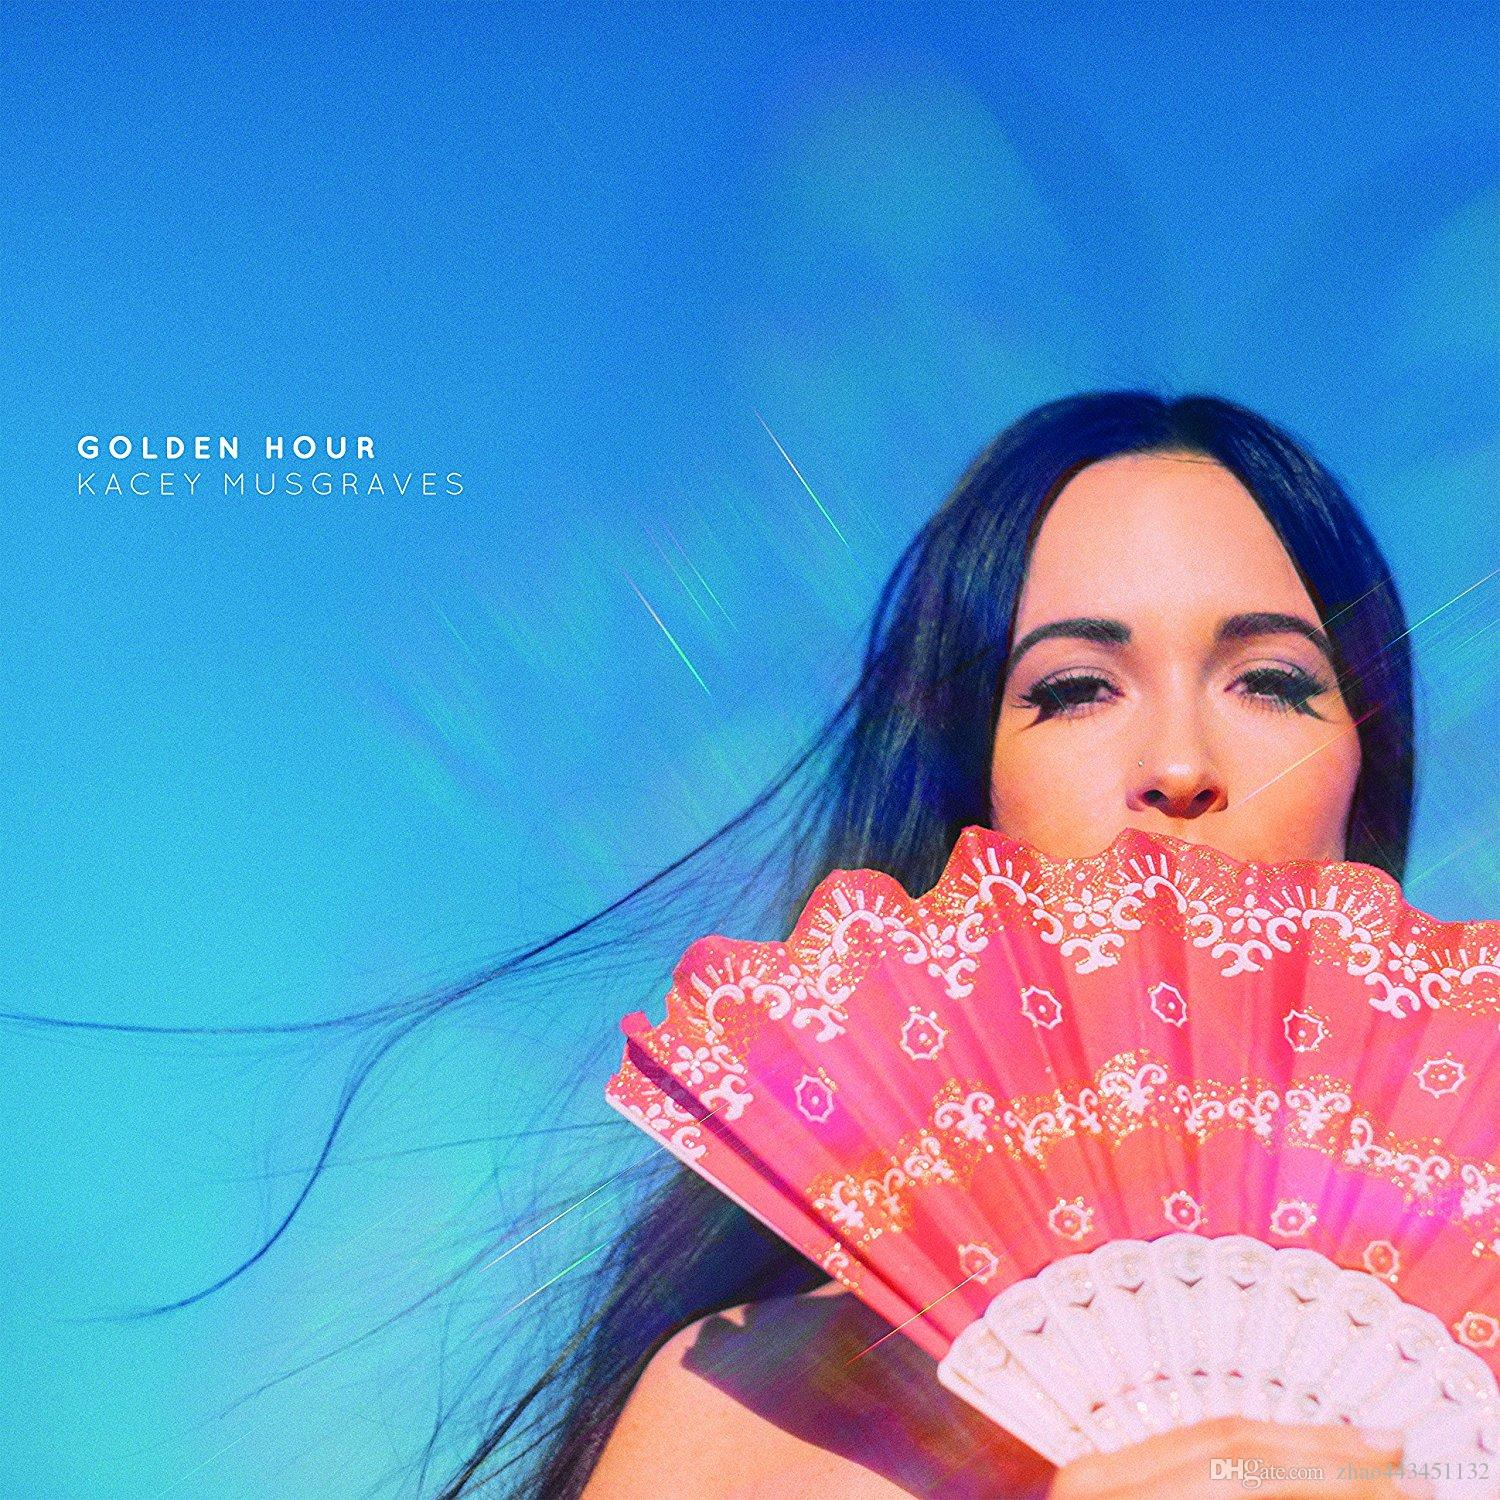 Golden Hour by Kacey Musgraves cover music poster